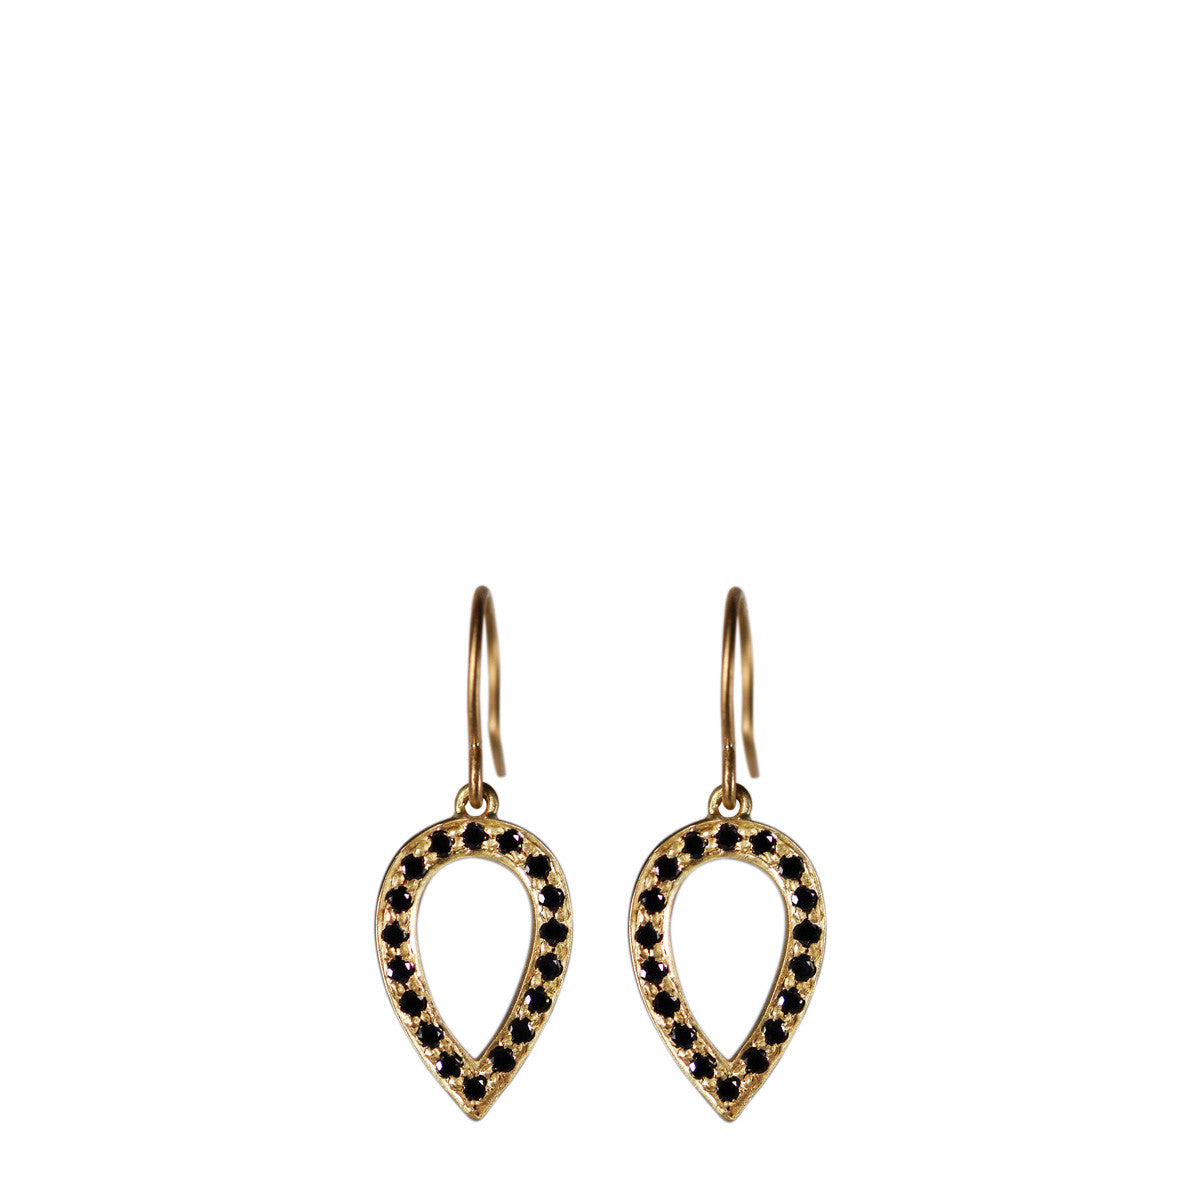 18K Gold Black Diamond Pave Teardrop Earrings